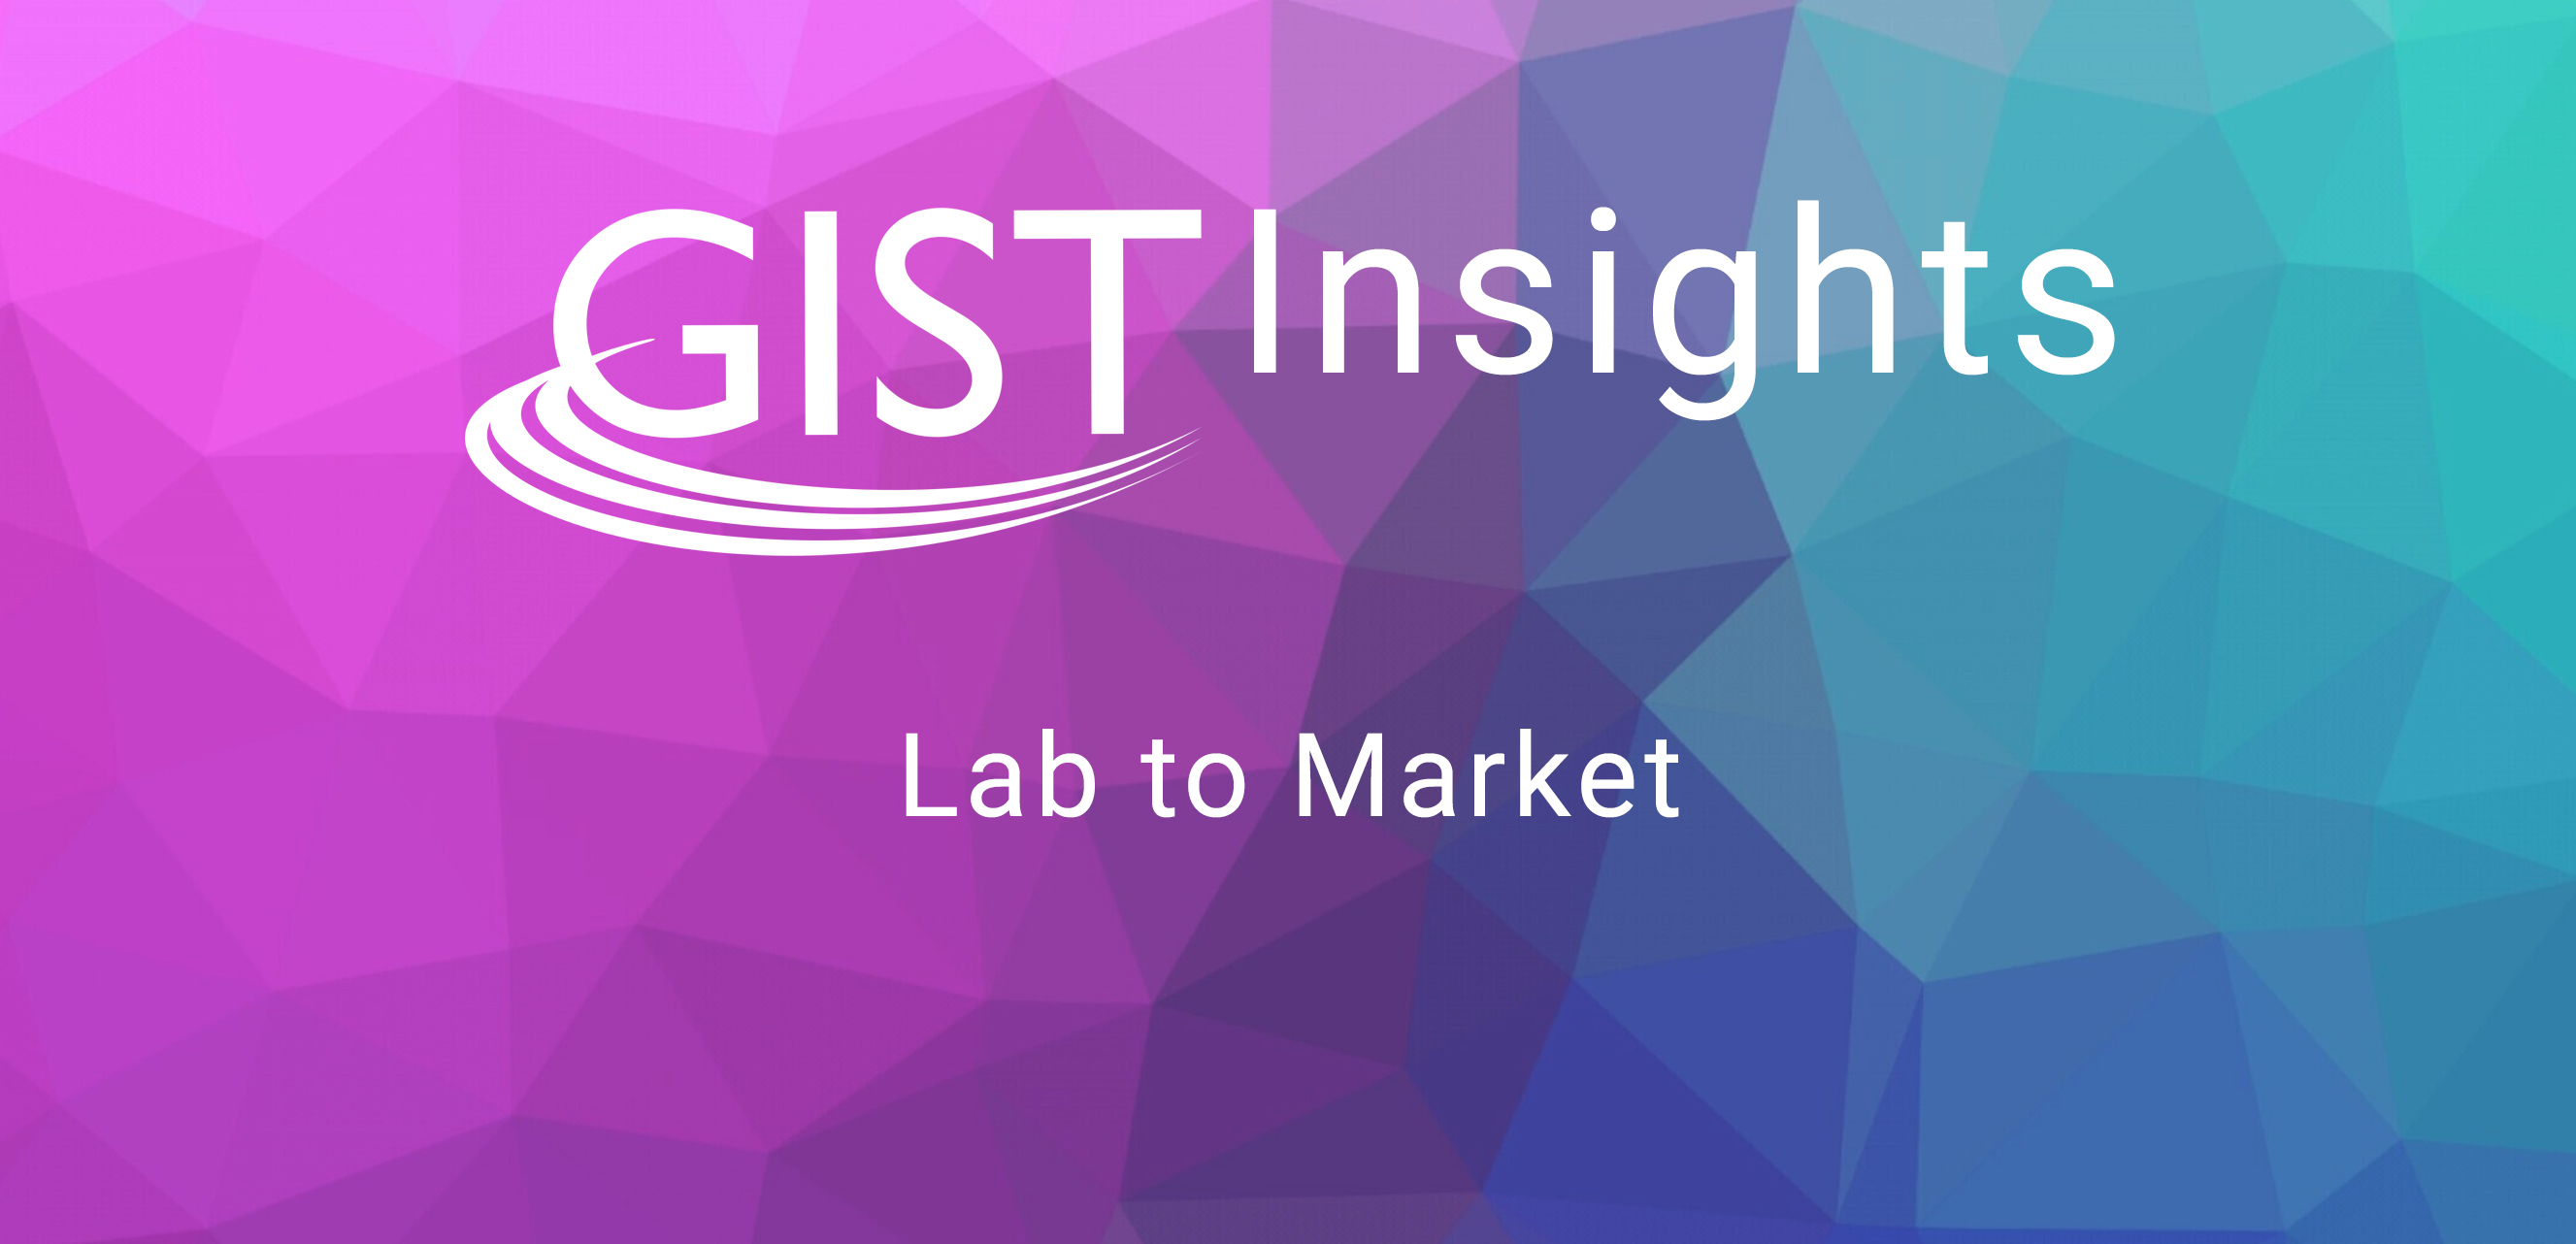 lab to market